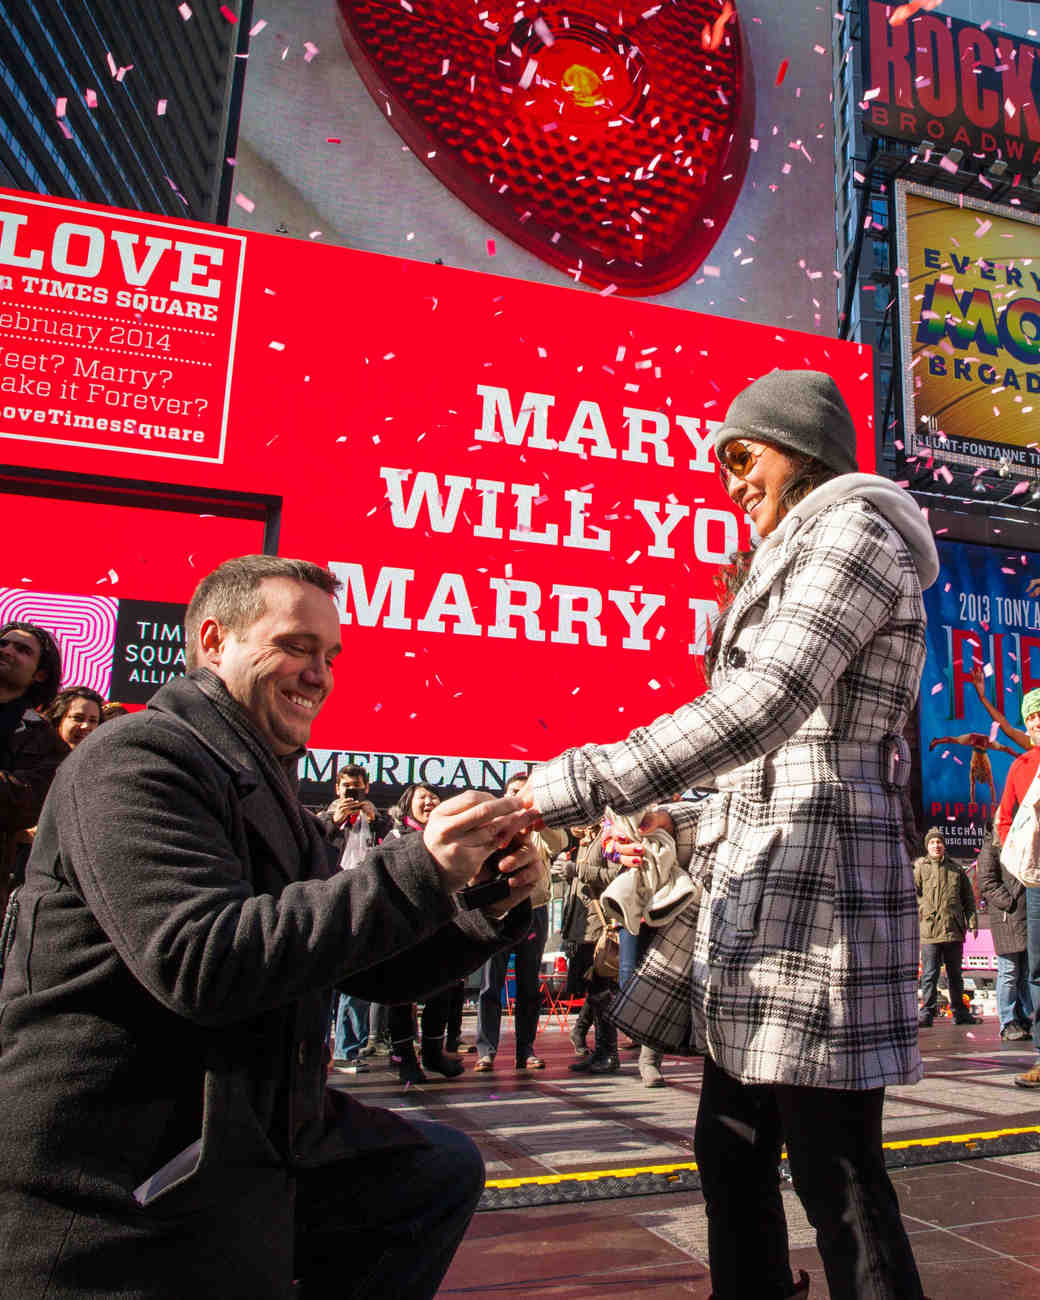 public wedding proposal